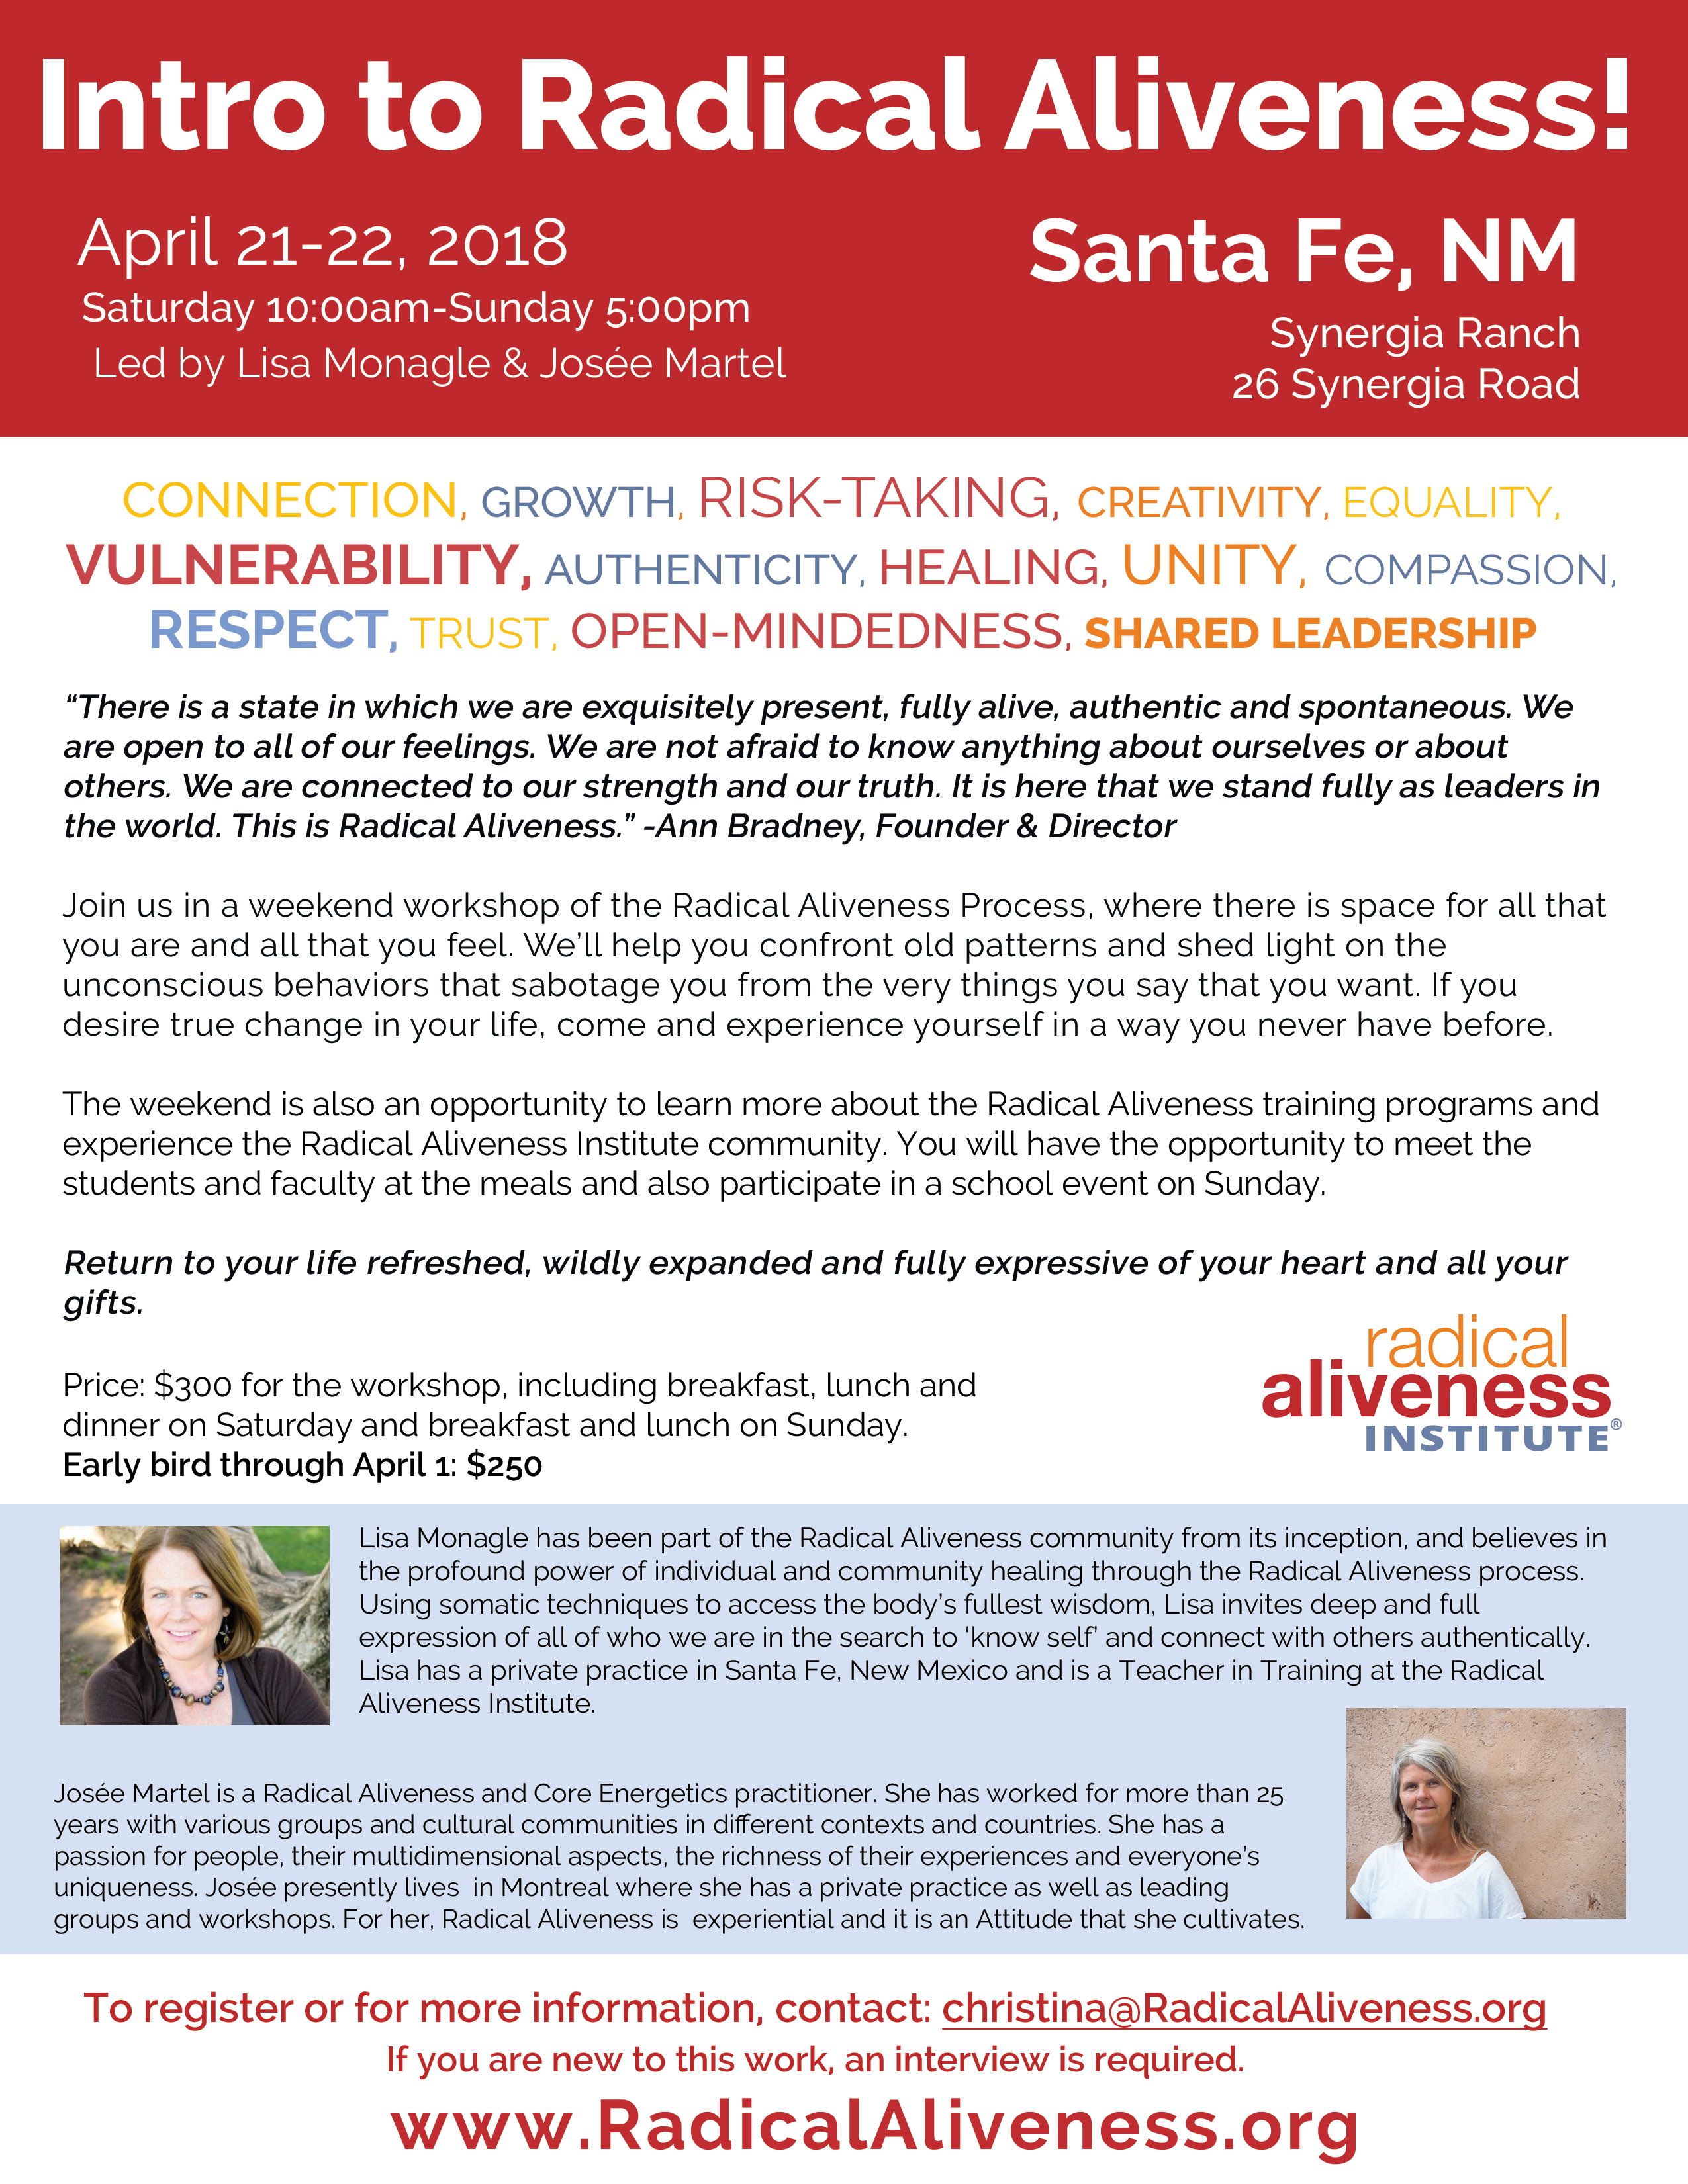 Intro to Radical Aliveness: Santa Fe, NM @ Synergia Ranch  | Santa Fe | New Mexico | United States